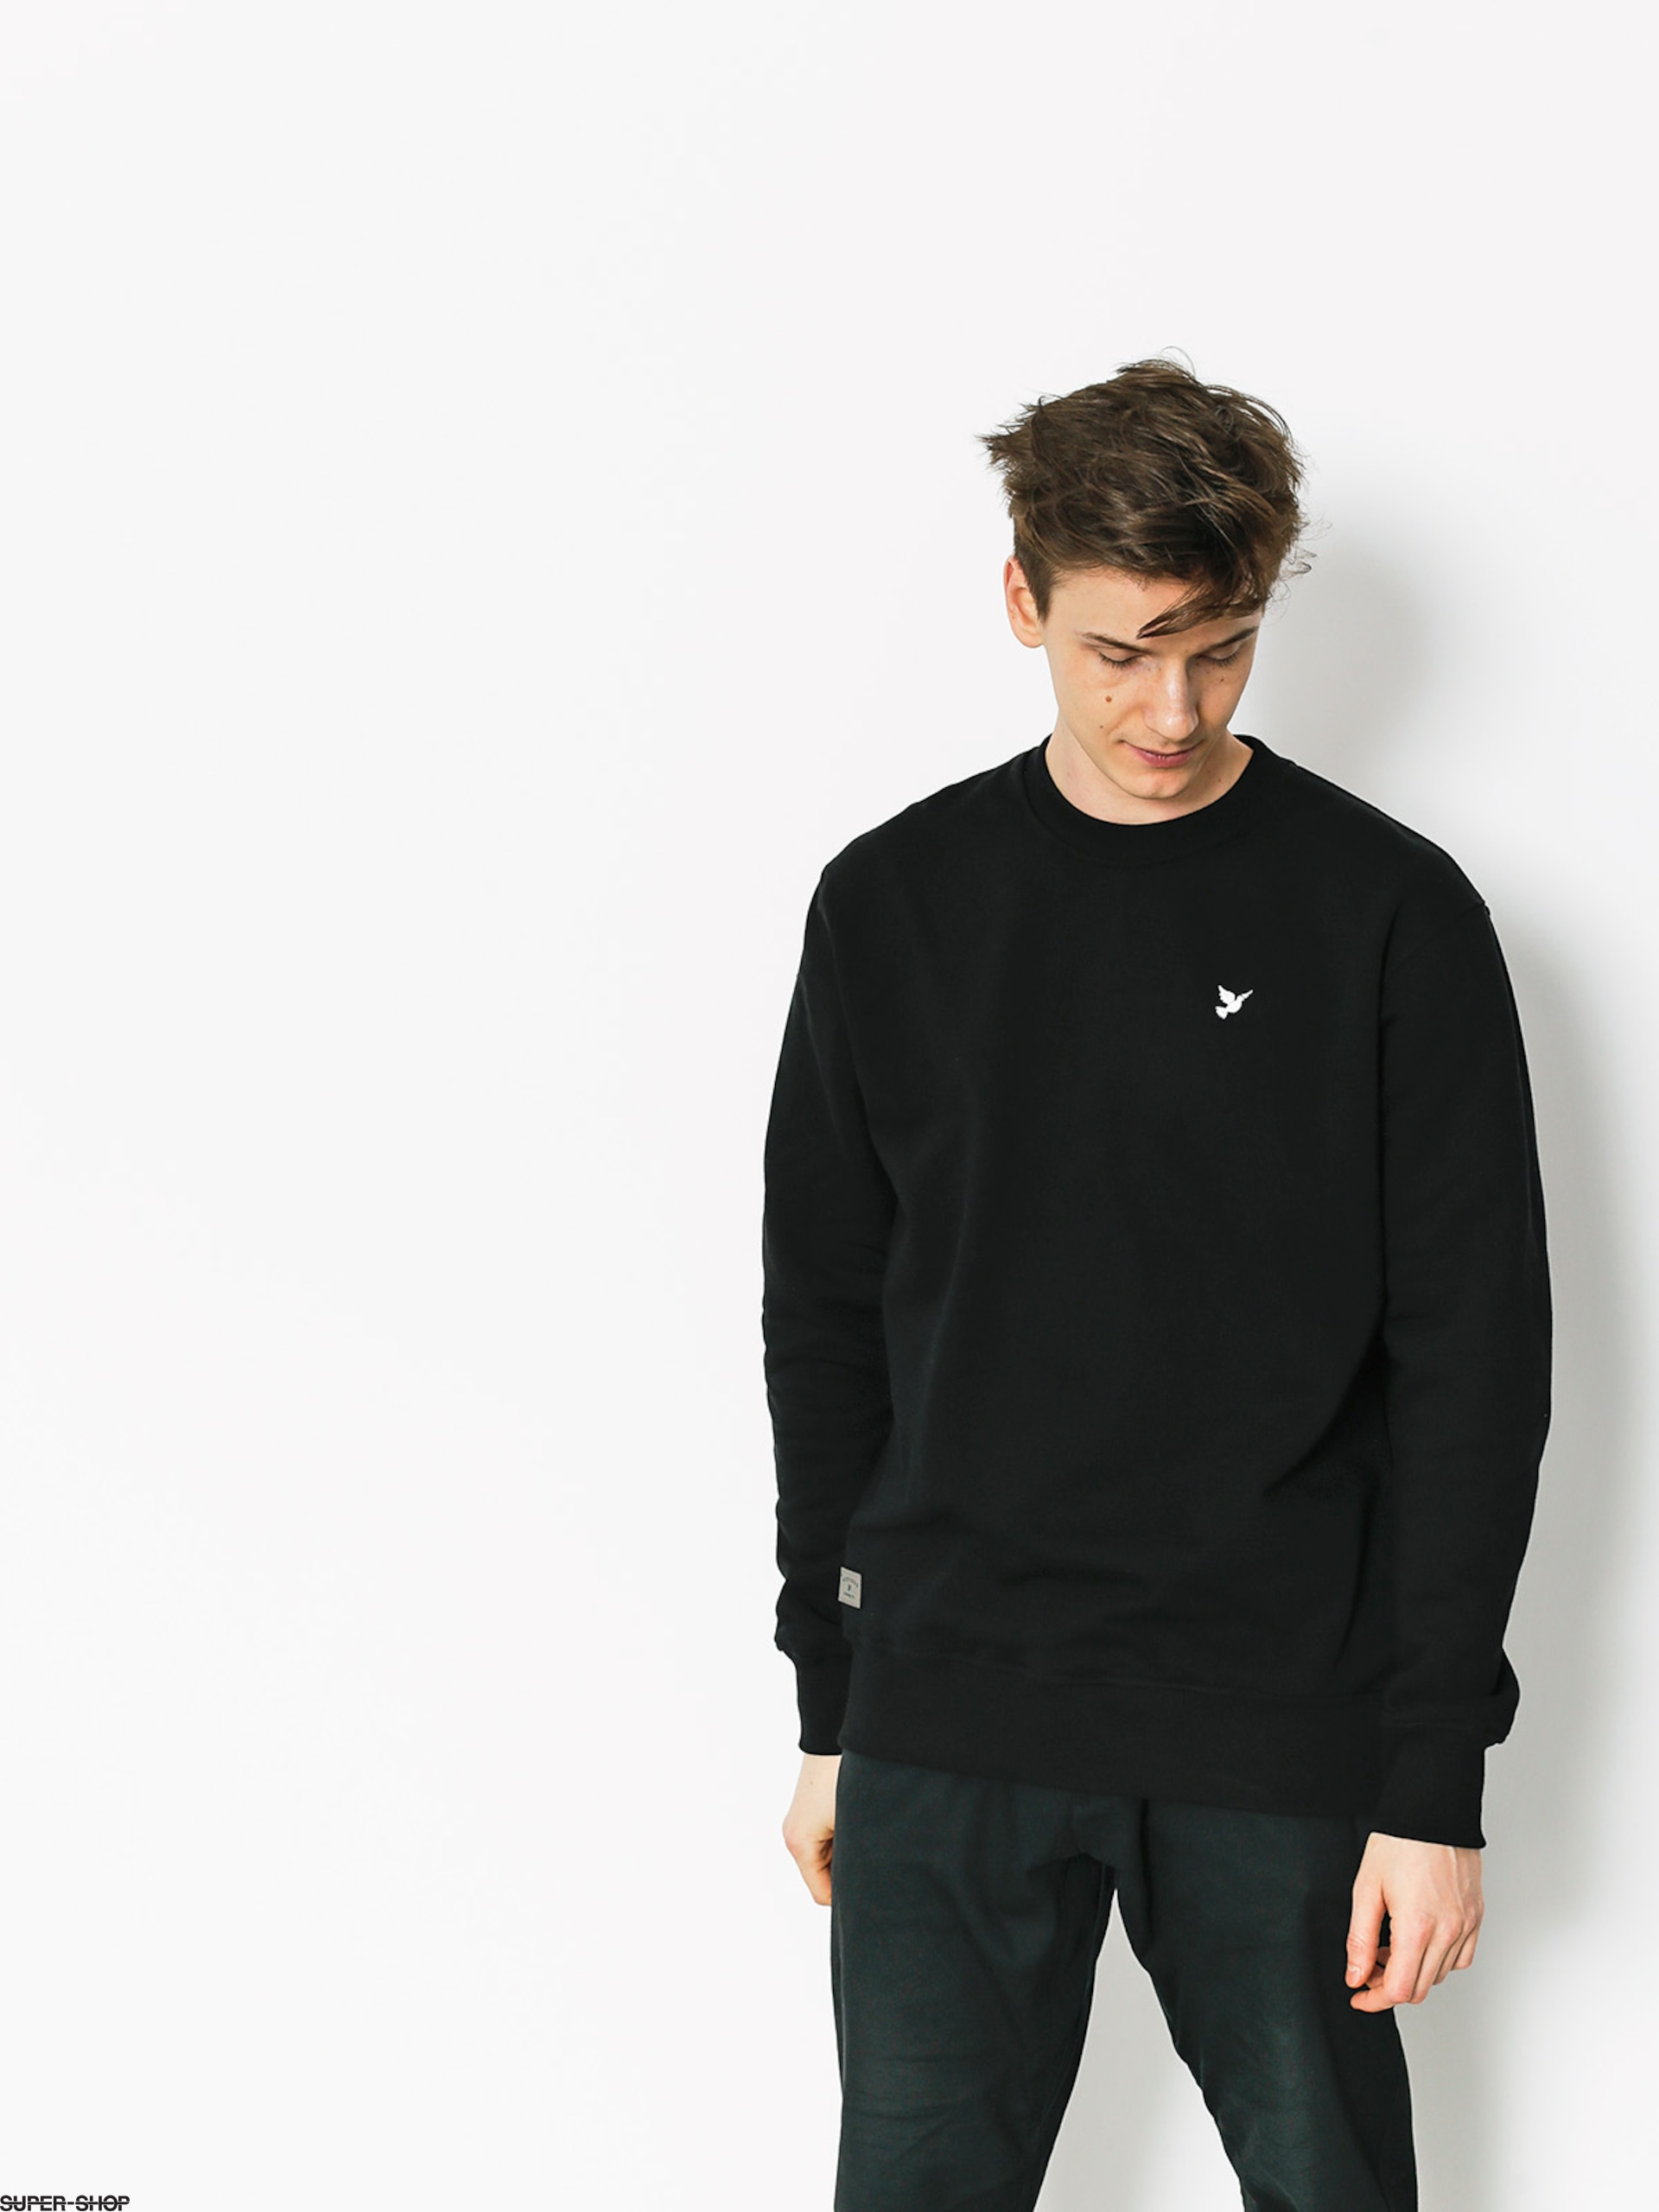 Nervous Sweatshirt Icon (black)